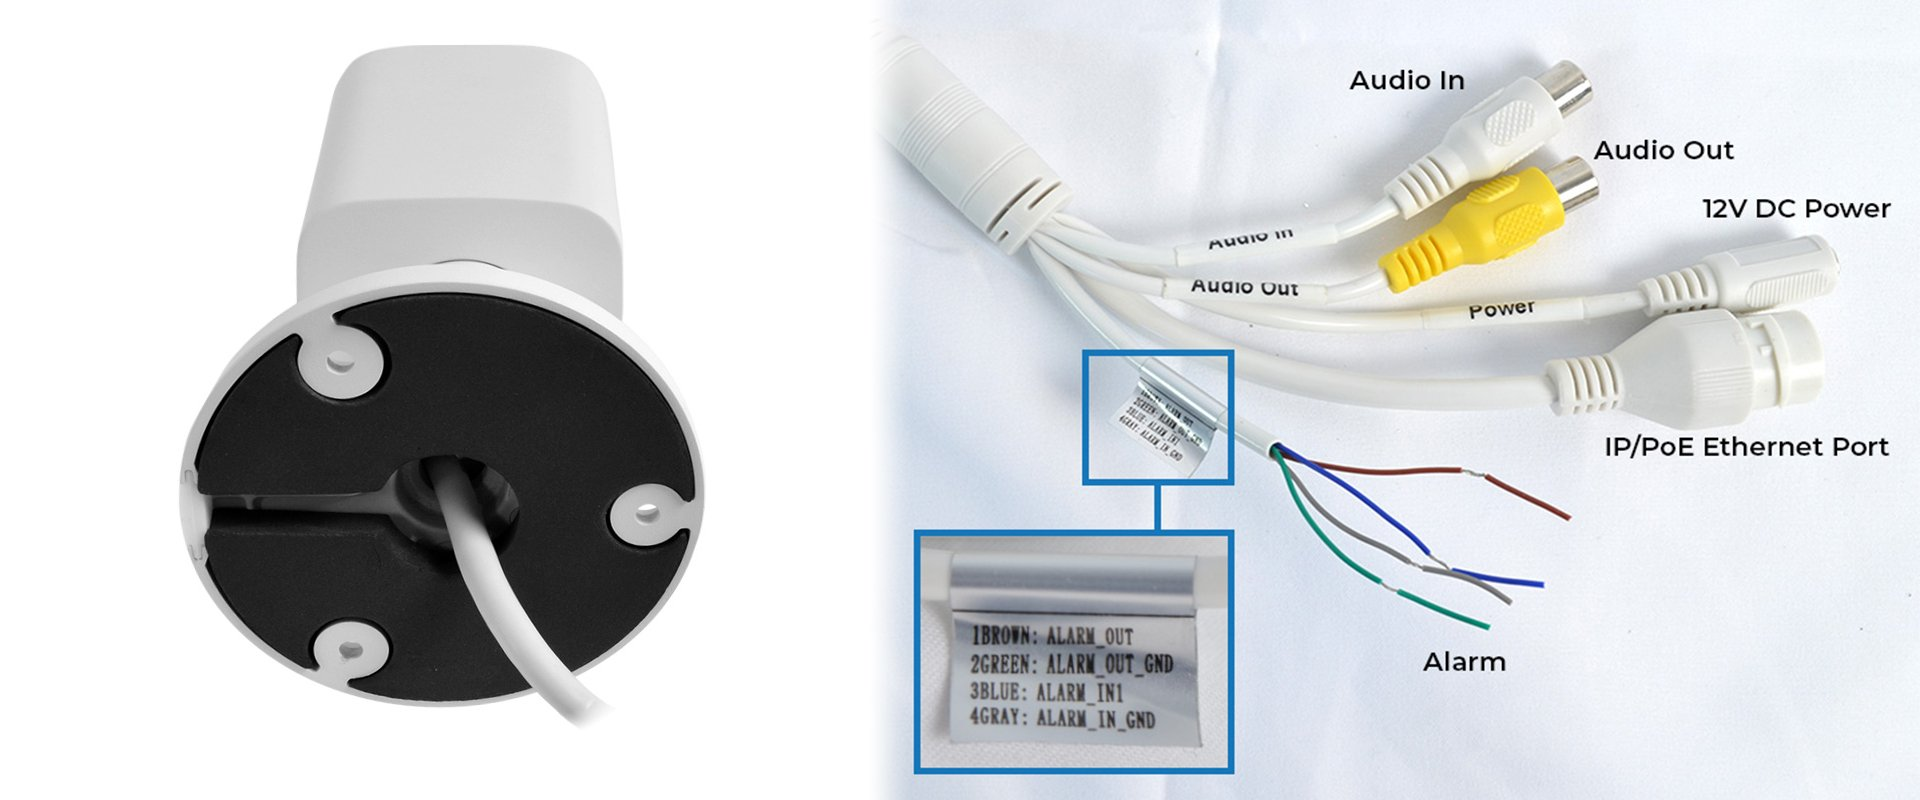 Pigtail for Alarm In/Out and Audio In/Out varifocal IP bullet camera